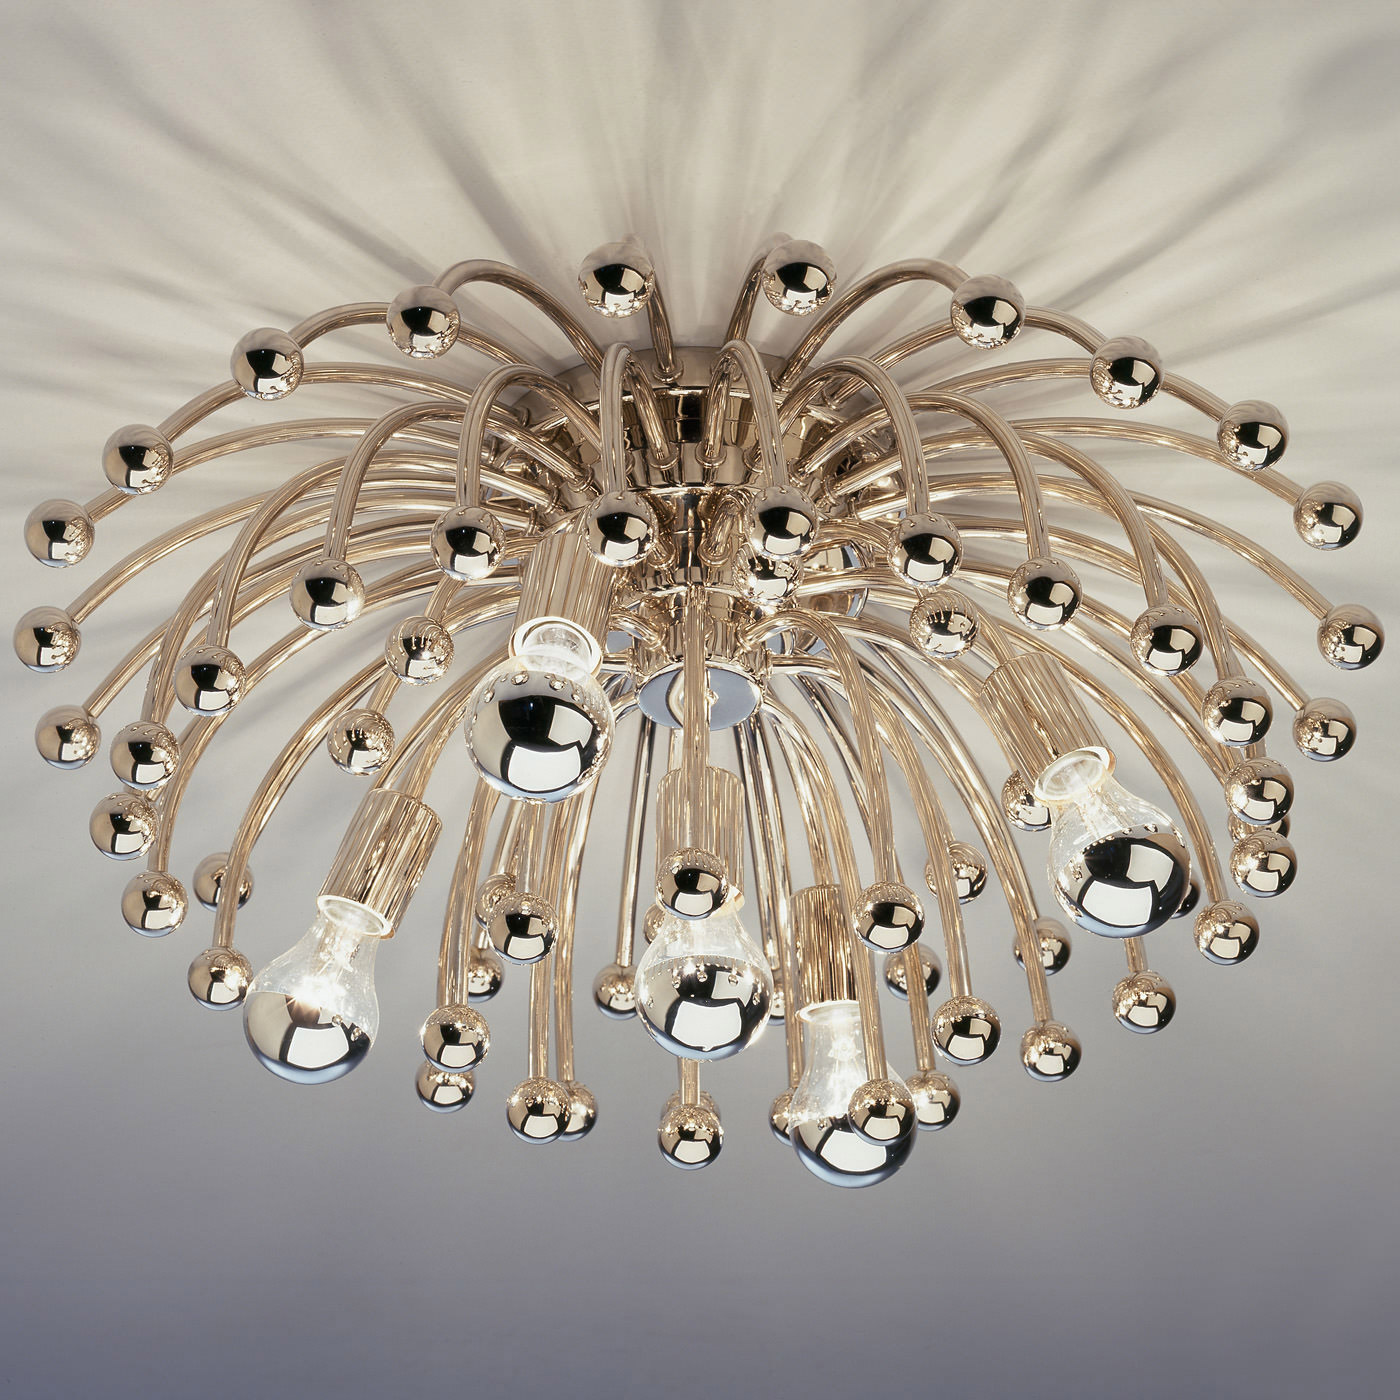 Anemone Wall Ceiling Light By Jonathan Adler Ra S1306